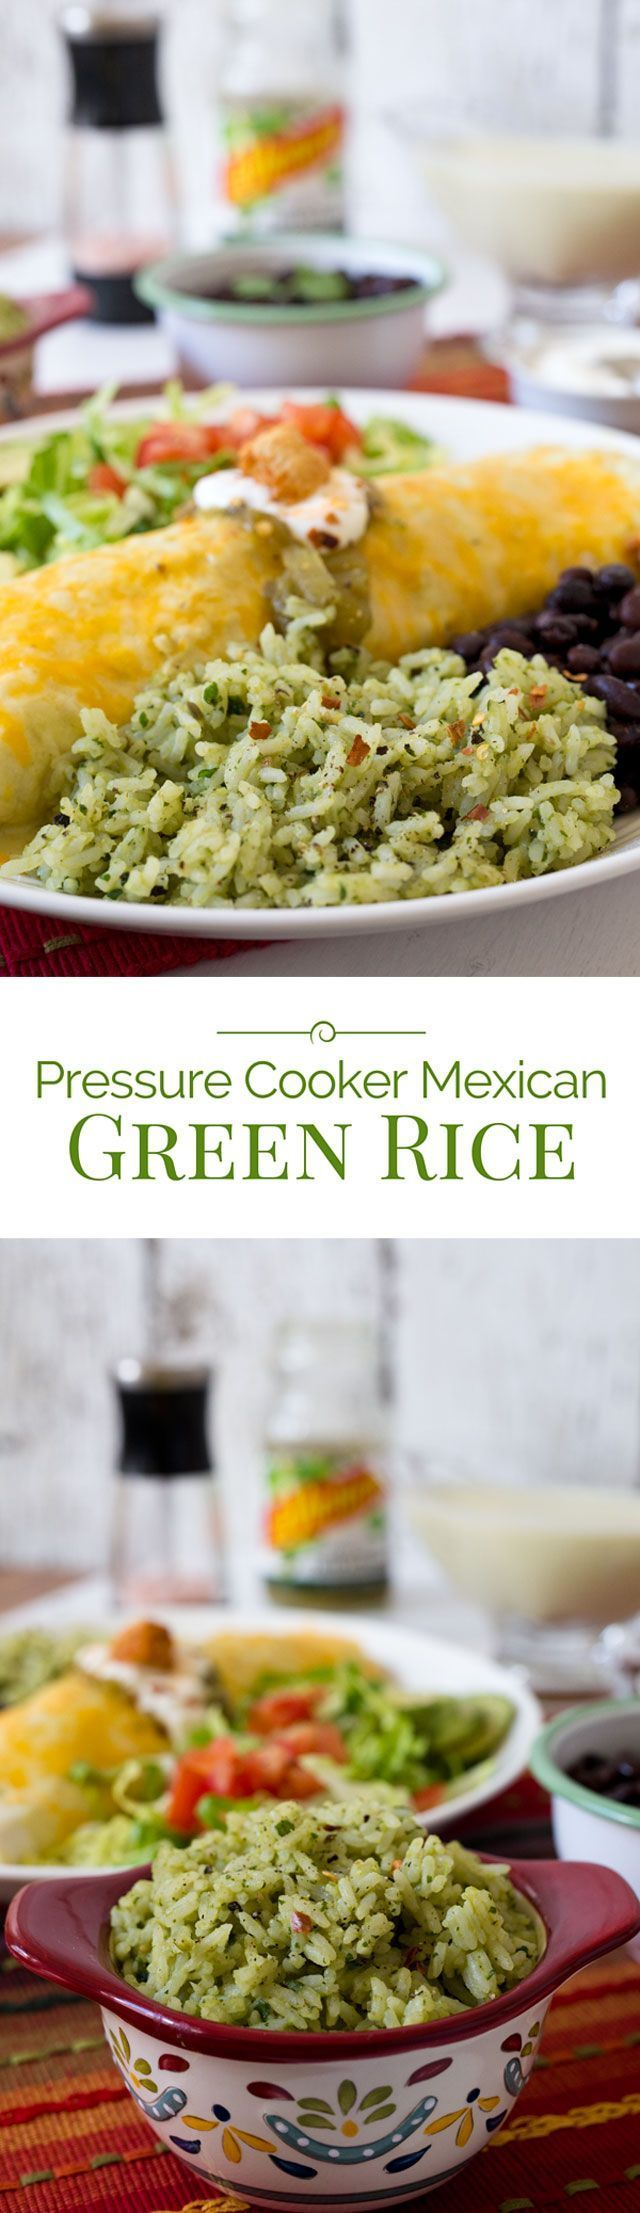 This Pressure Cooker Mexican Green Rice made with avocado, cilantro, and green salsa is a fabulous alternative to traditional Spanish rice.